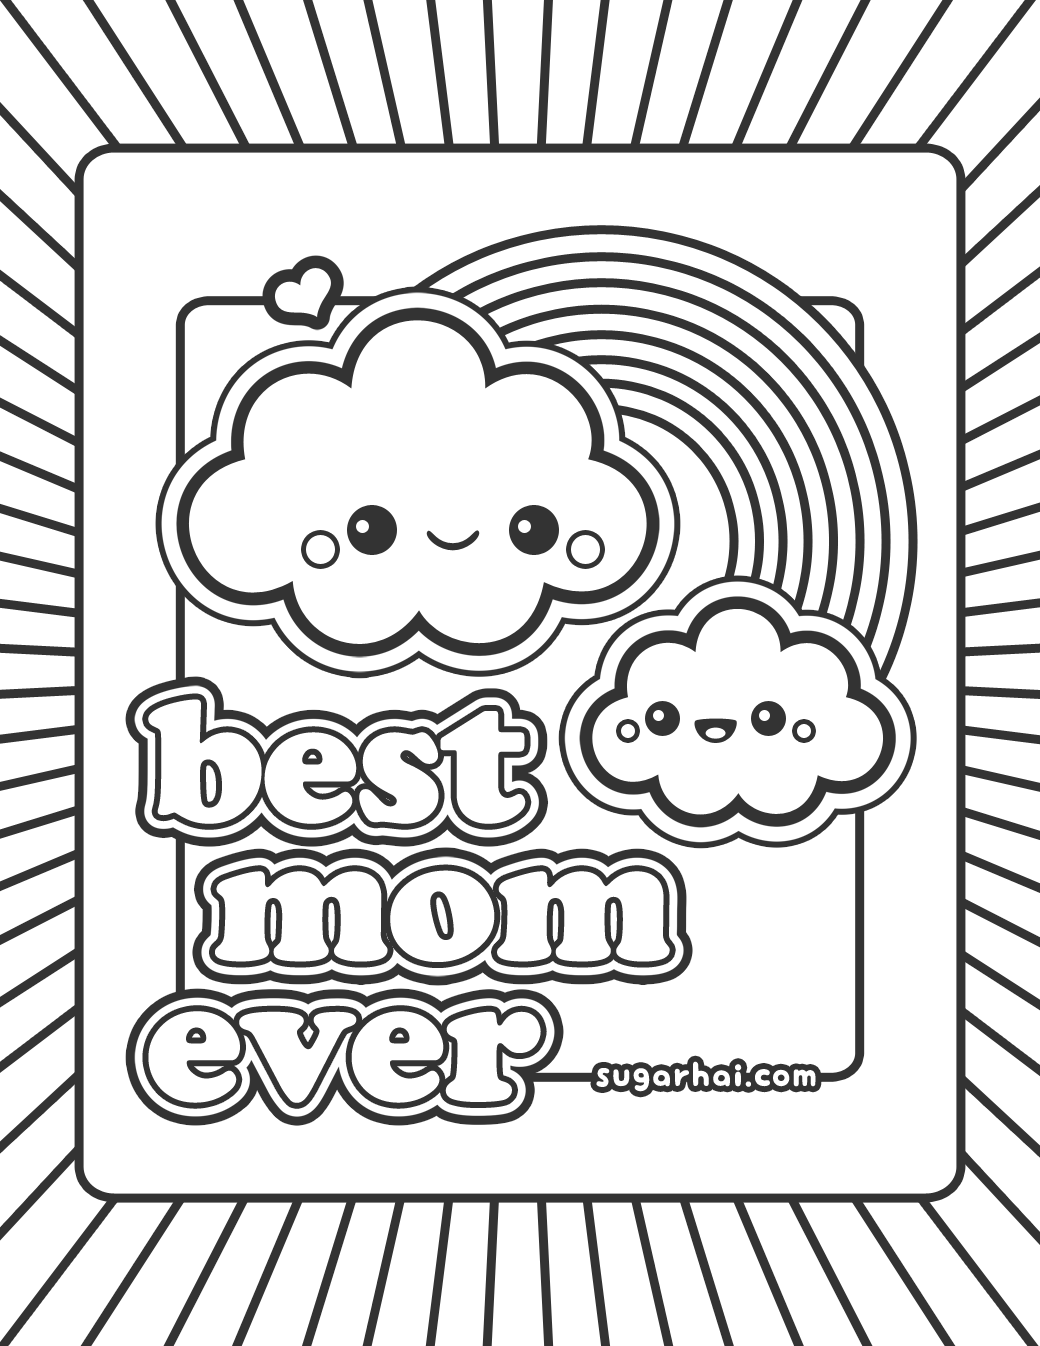 i love you mom and dad pictures coloring pages that say i love you mom and dad love and mom i dad pictures you